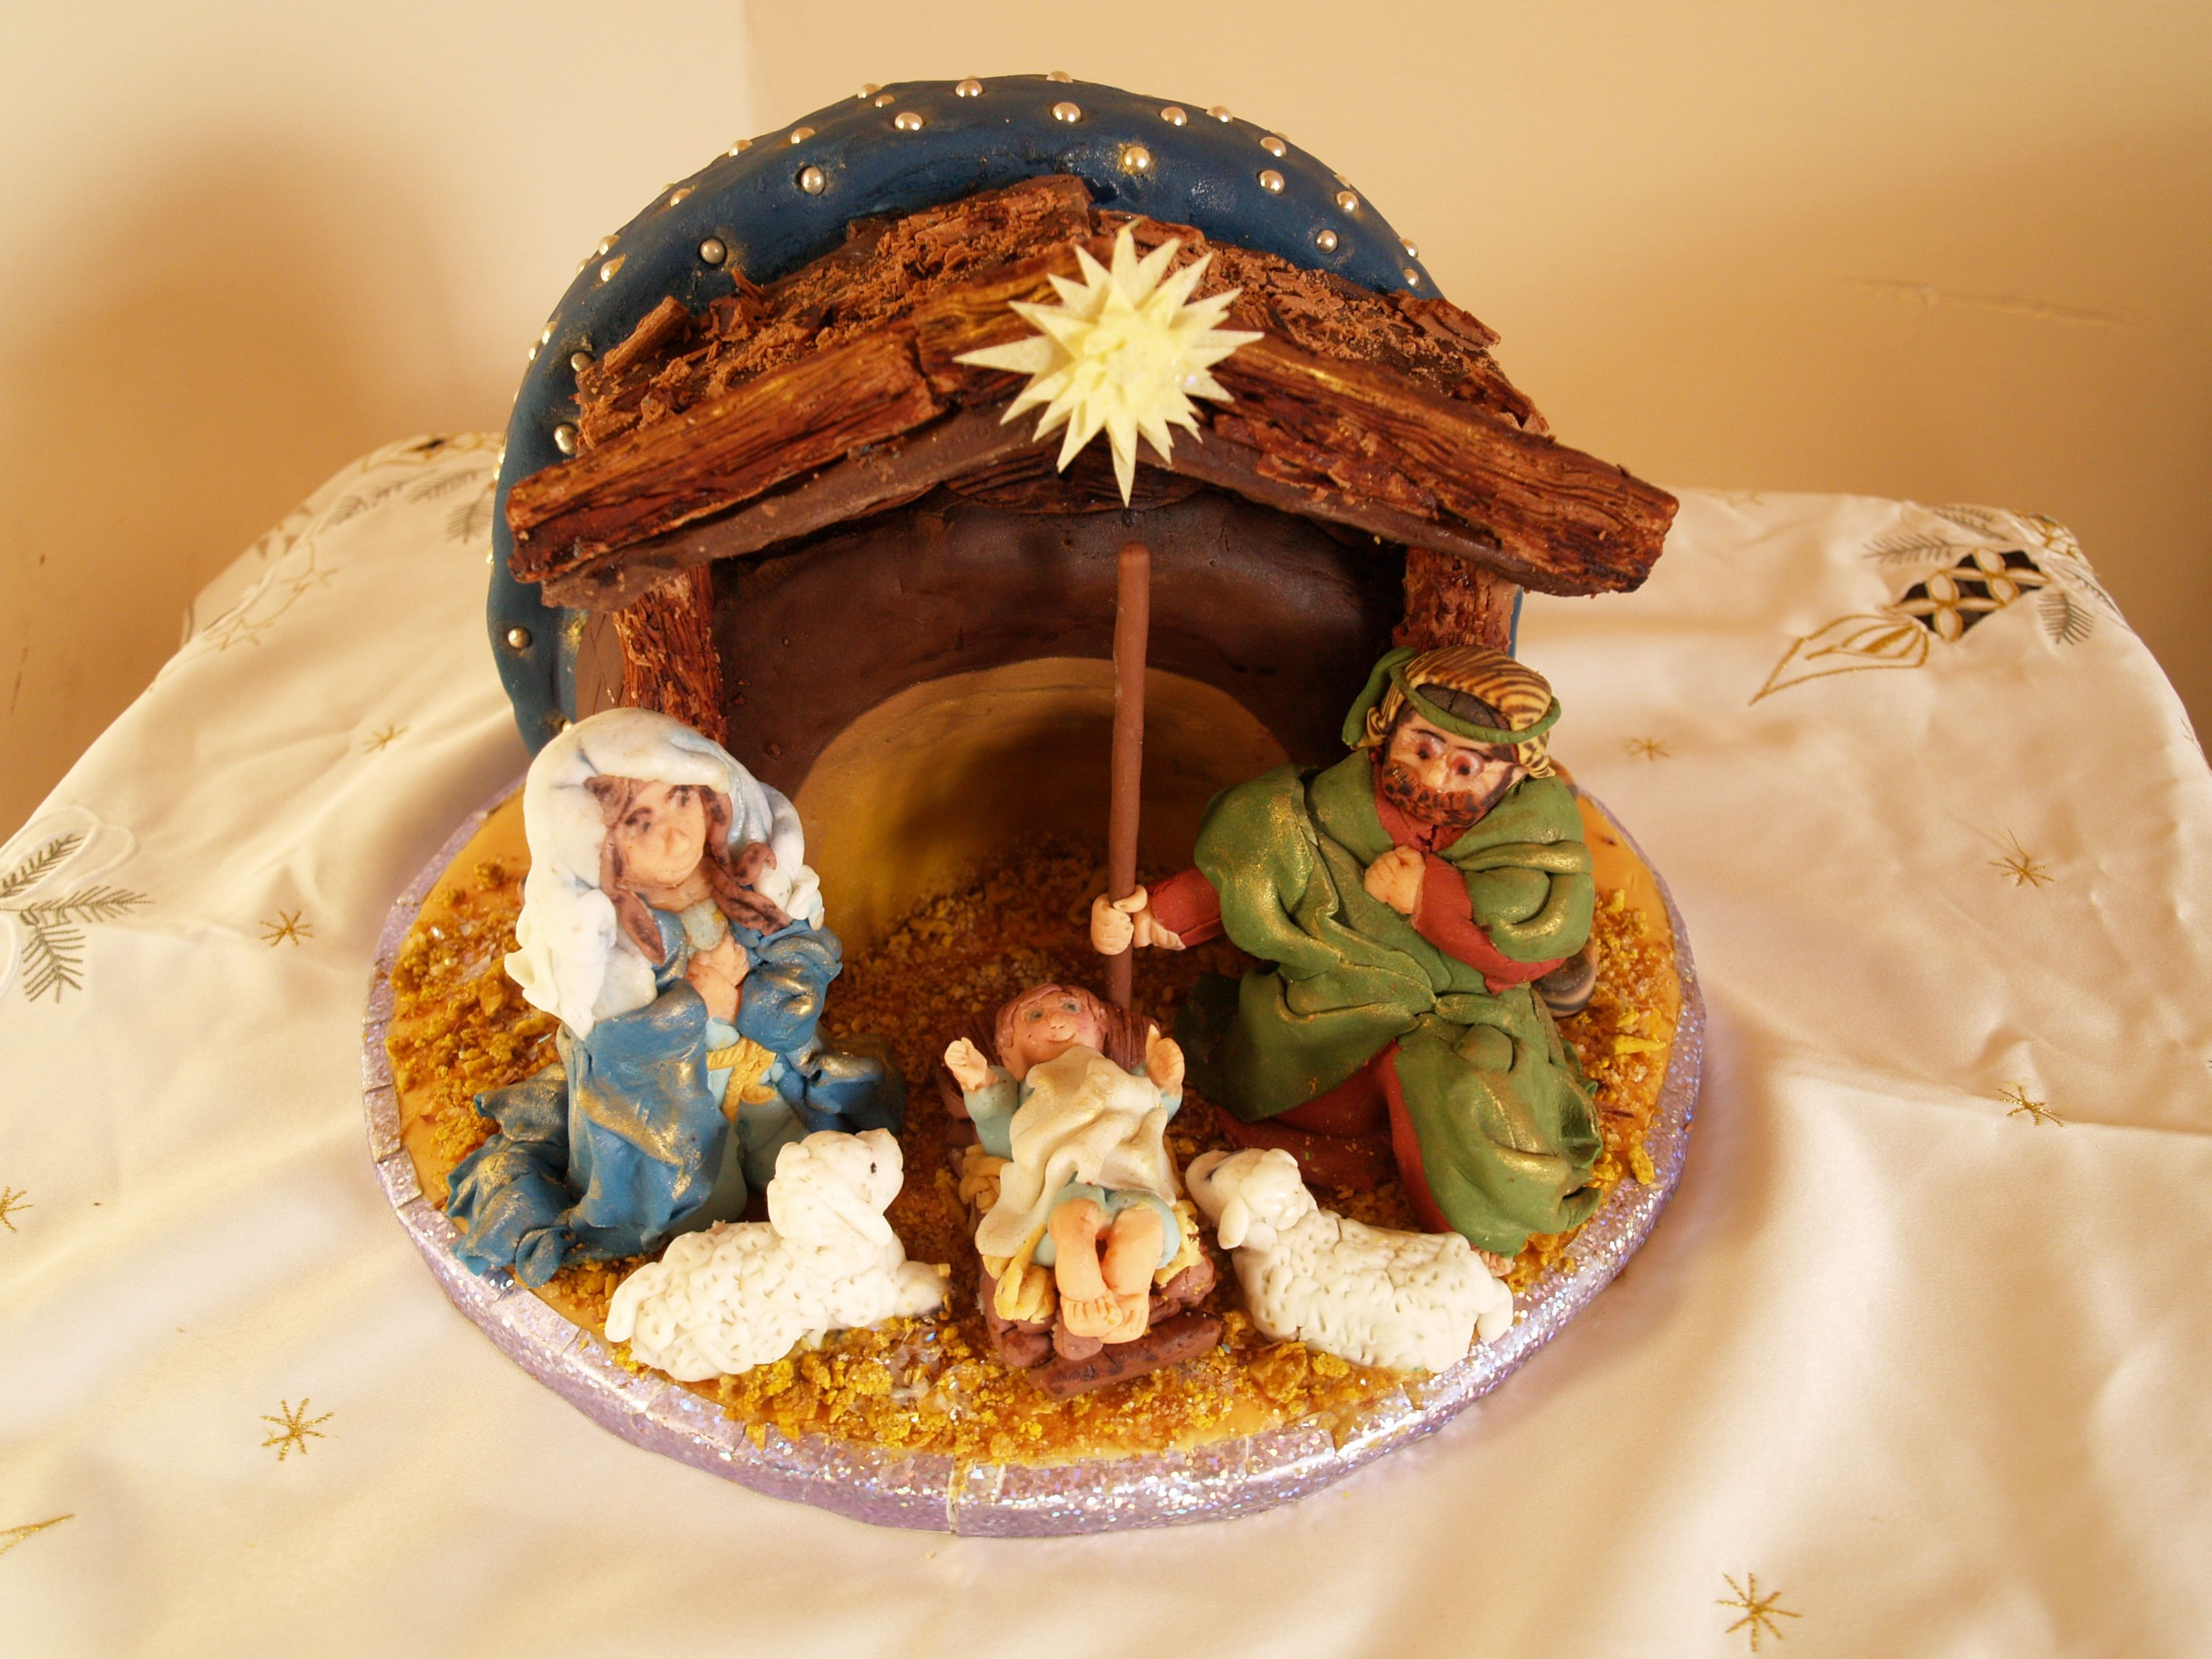 Nativity Scene Crib Made With Two Cakes And 5 3d Figures All Made Of Sugarpaste Chocolate Base Was Made With A Mixtu Christmas Cake Nativity Nativity Scene